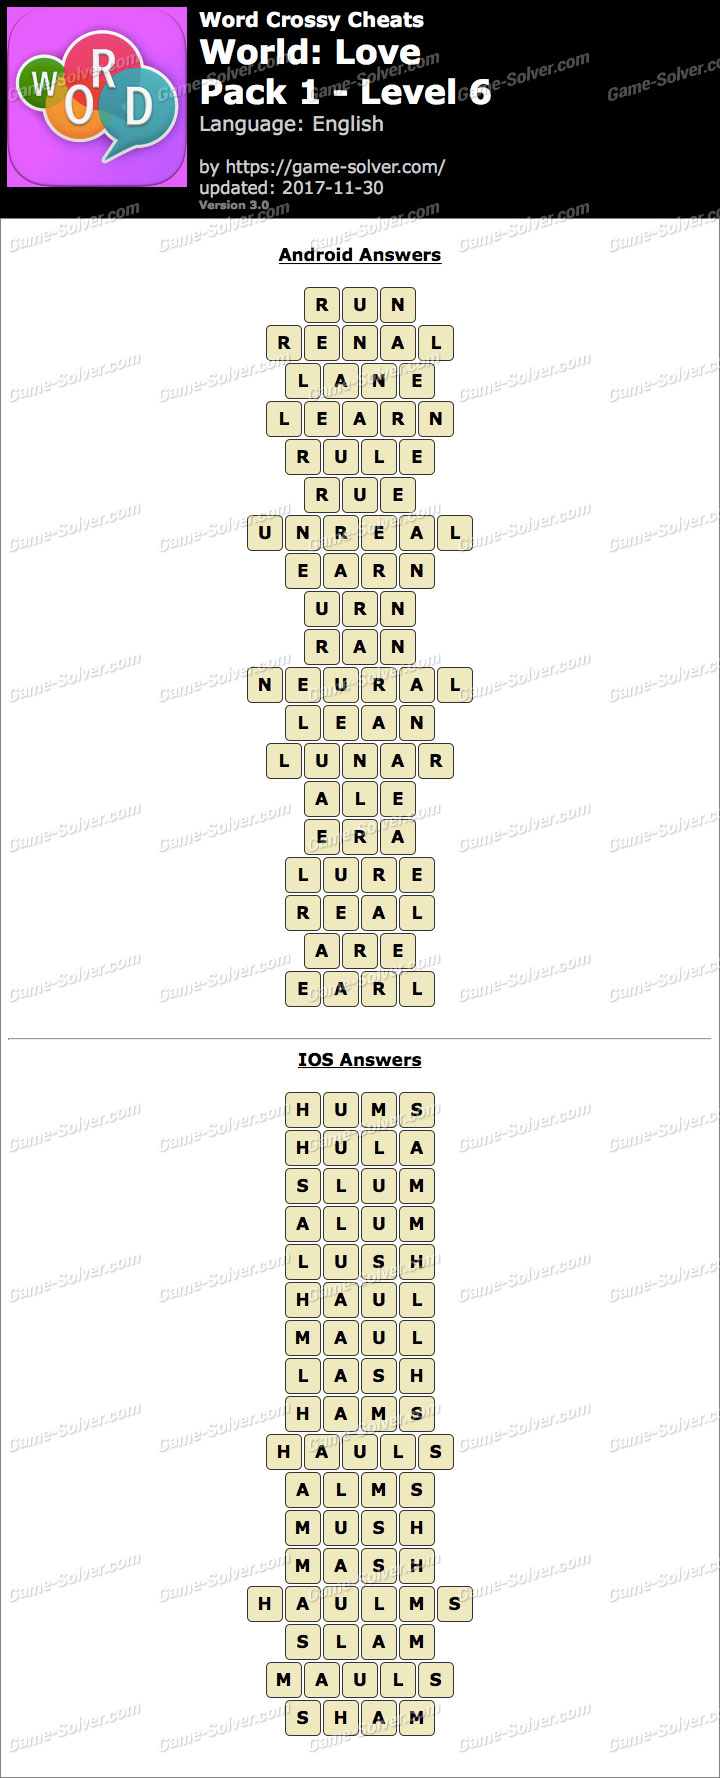 Word Crossy Love Pack 1 Level 6 Answers